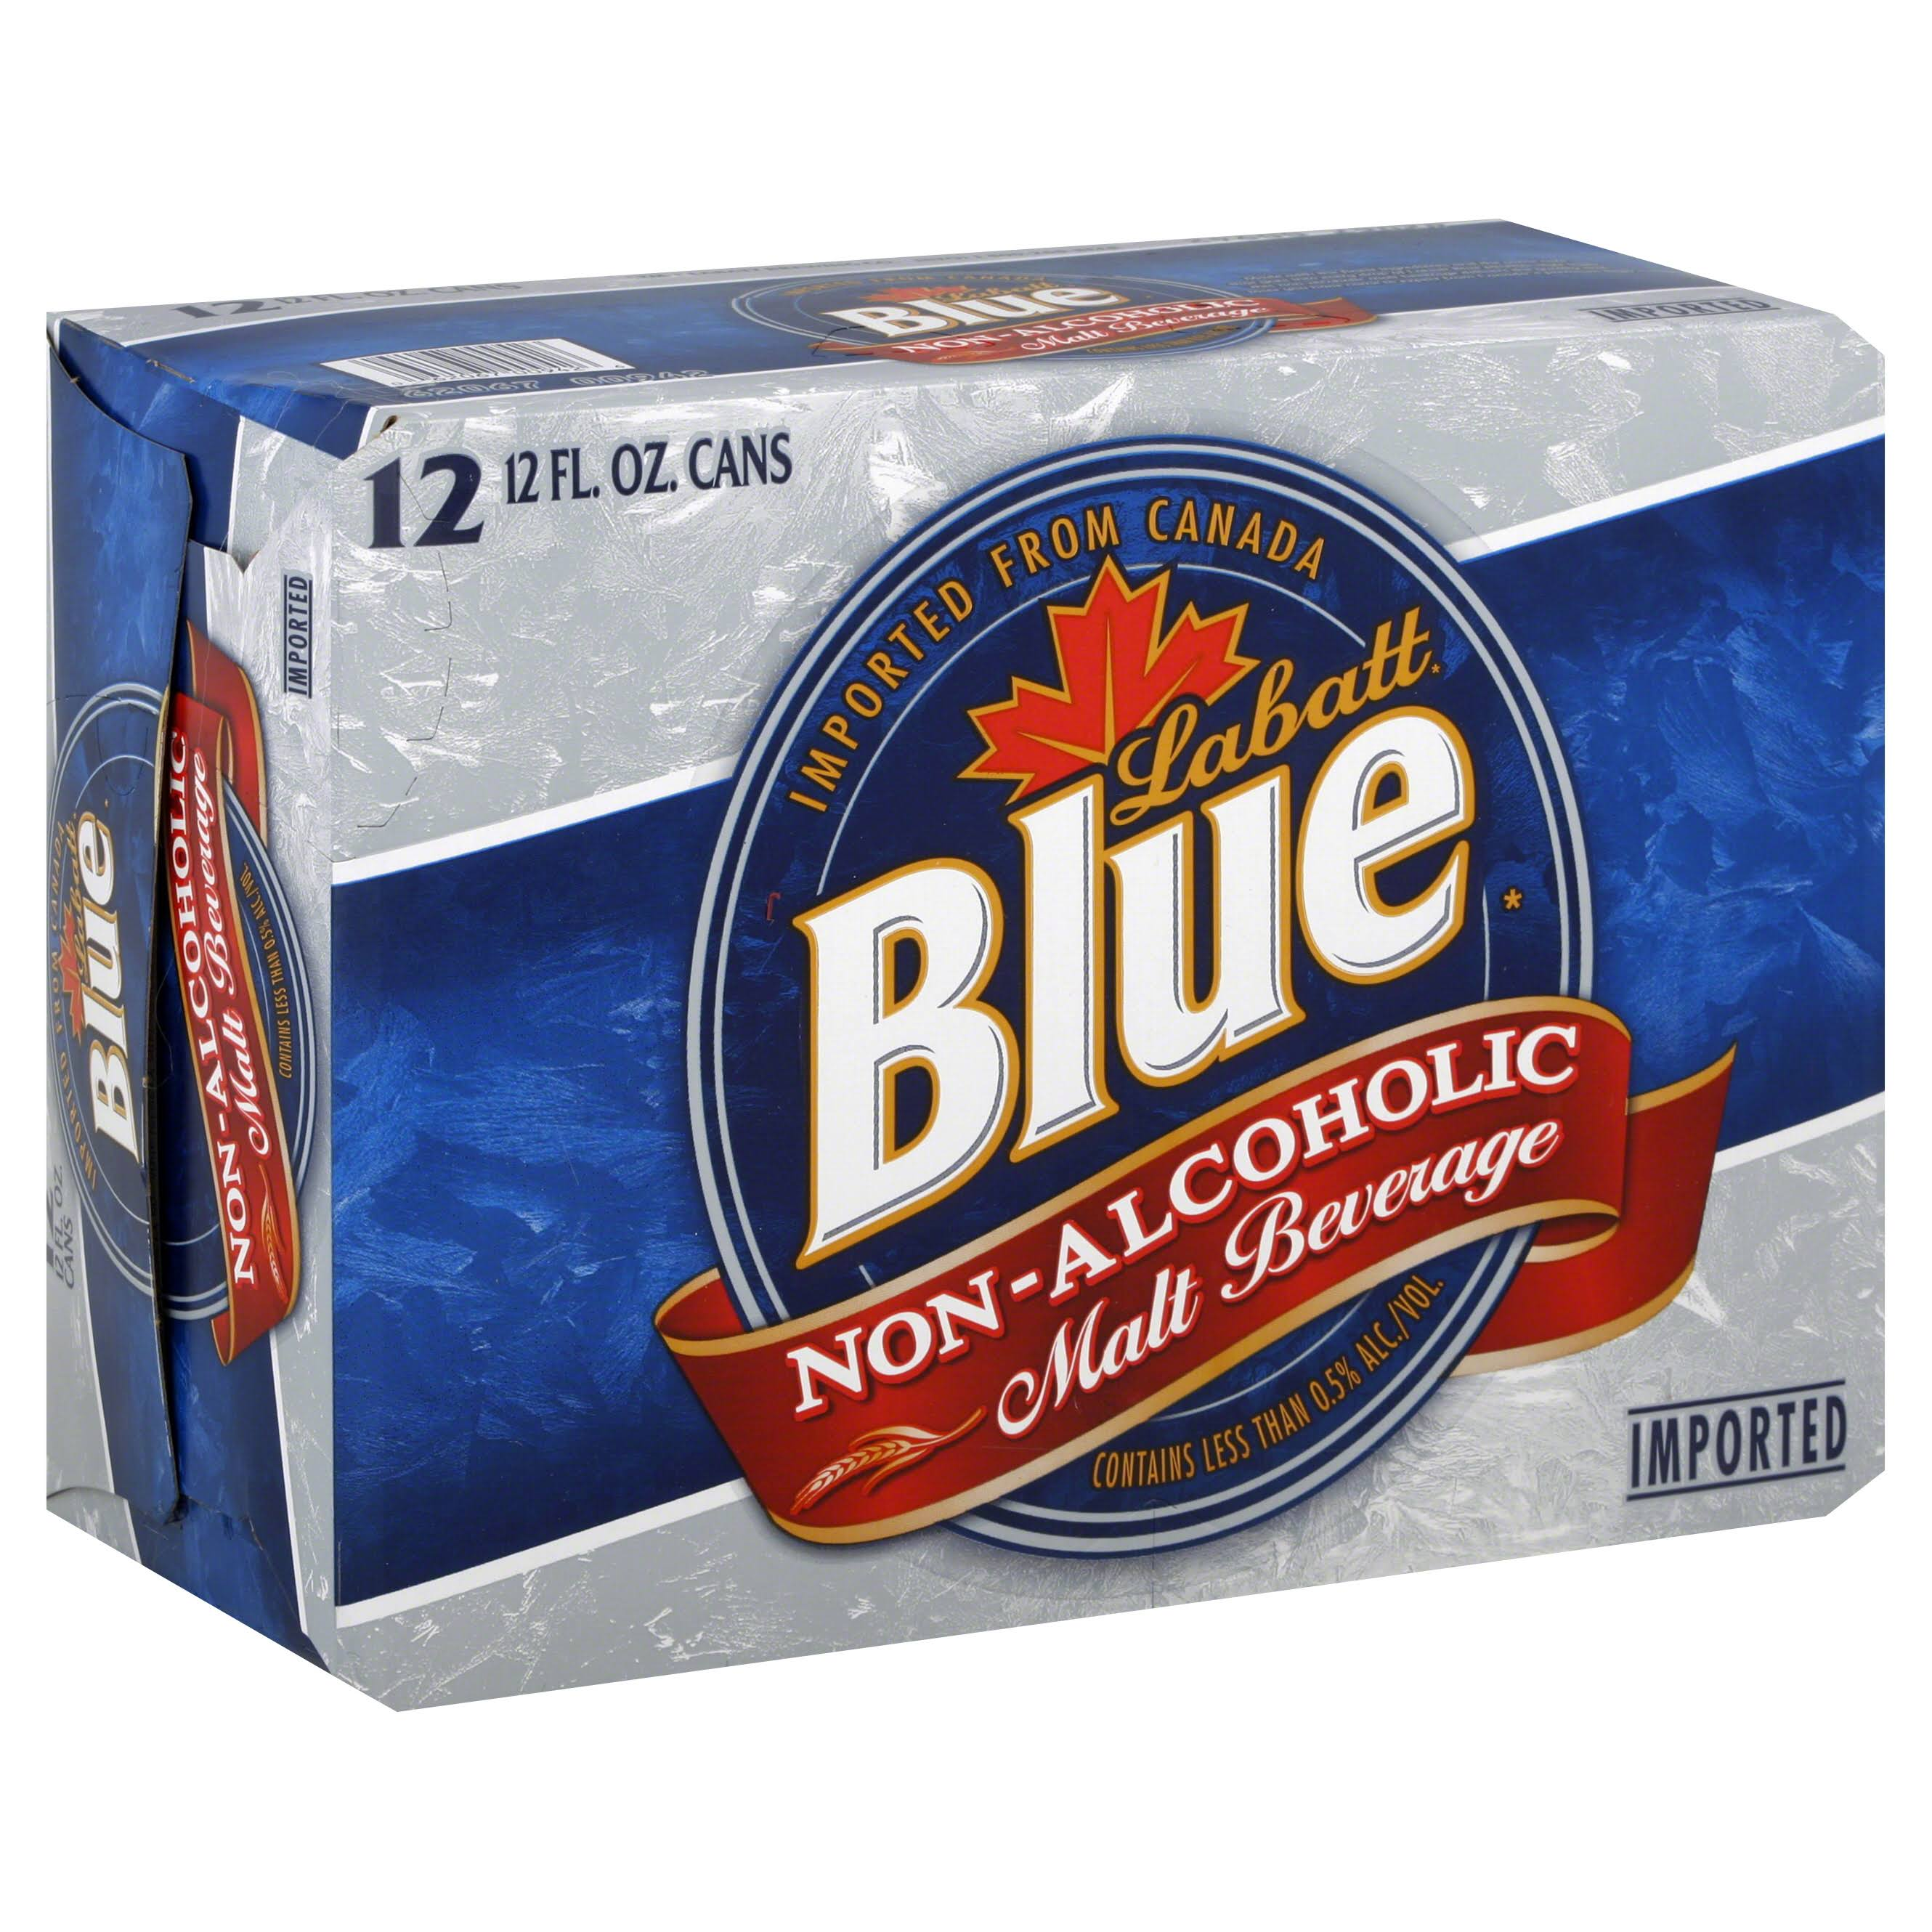 Labatt Blue Malt Beverage, Non-Alcoholic - 12 pack, 12 fl oz cans